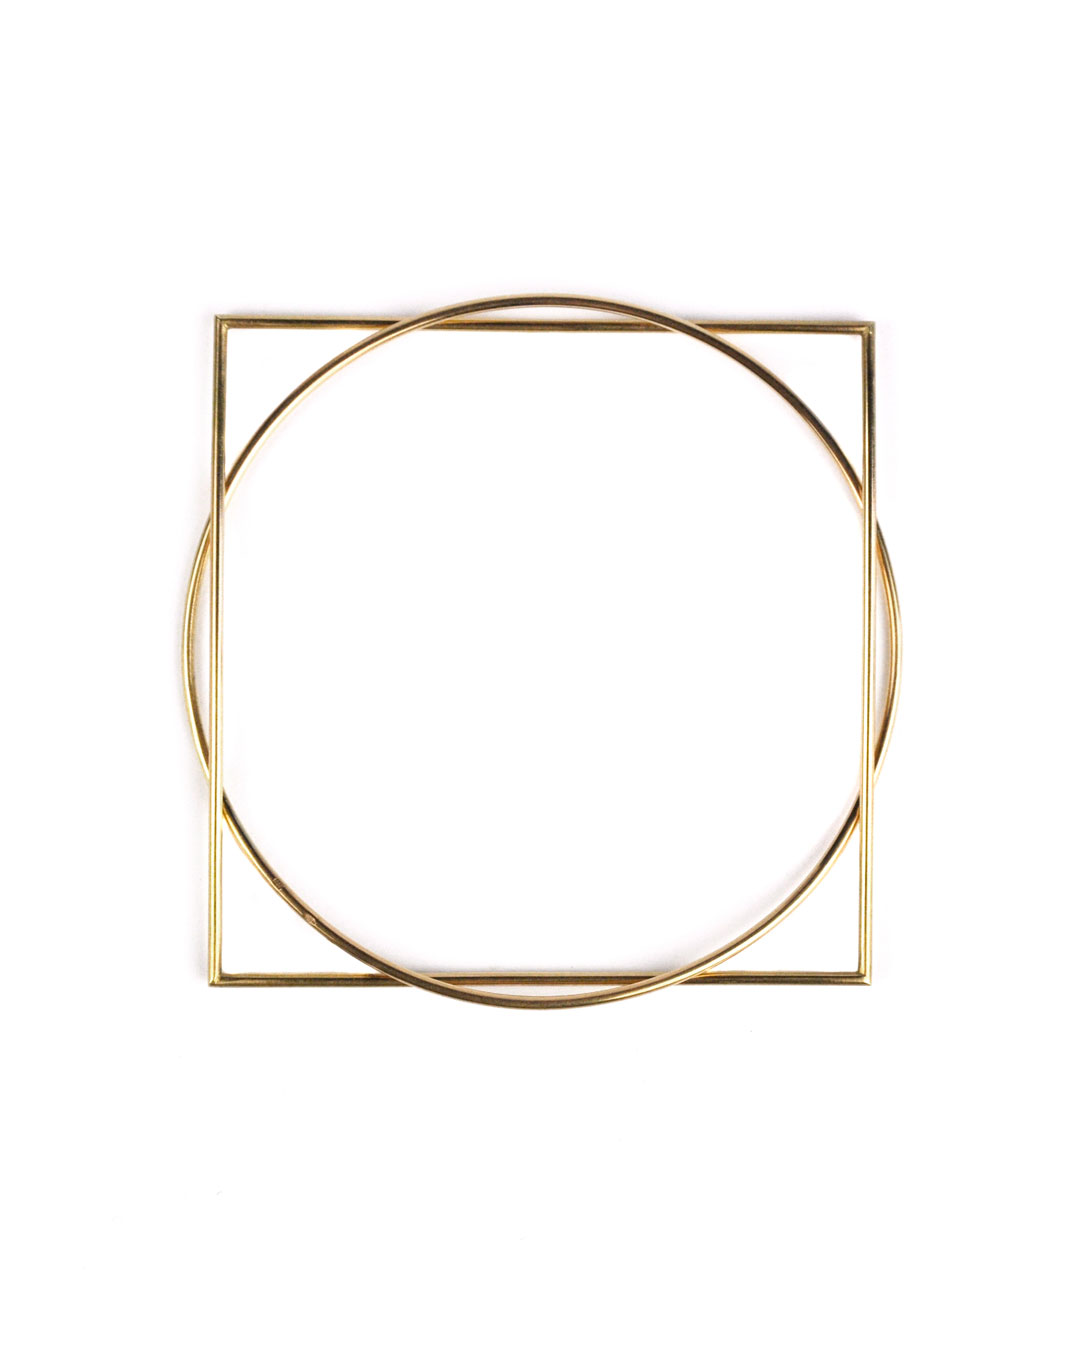 Herman Hermsen, untitled, 1985, brooch; 14ct gold, 67 x 65 x 3 mm, €1450